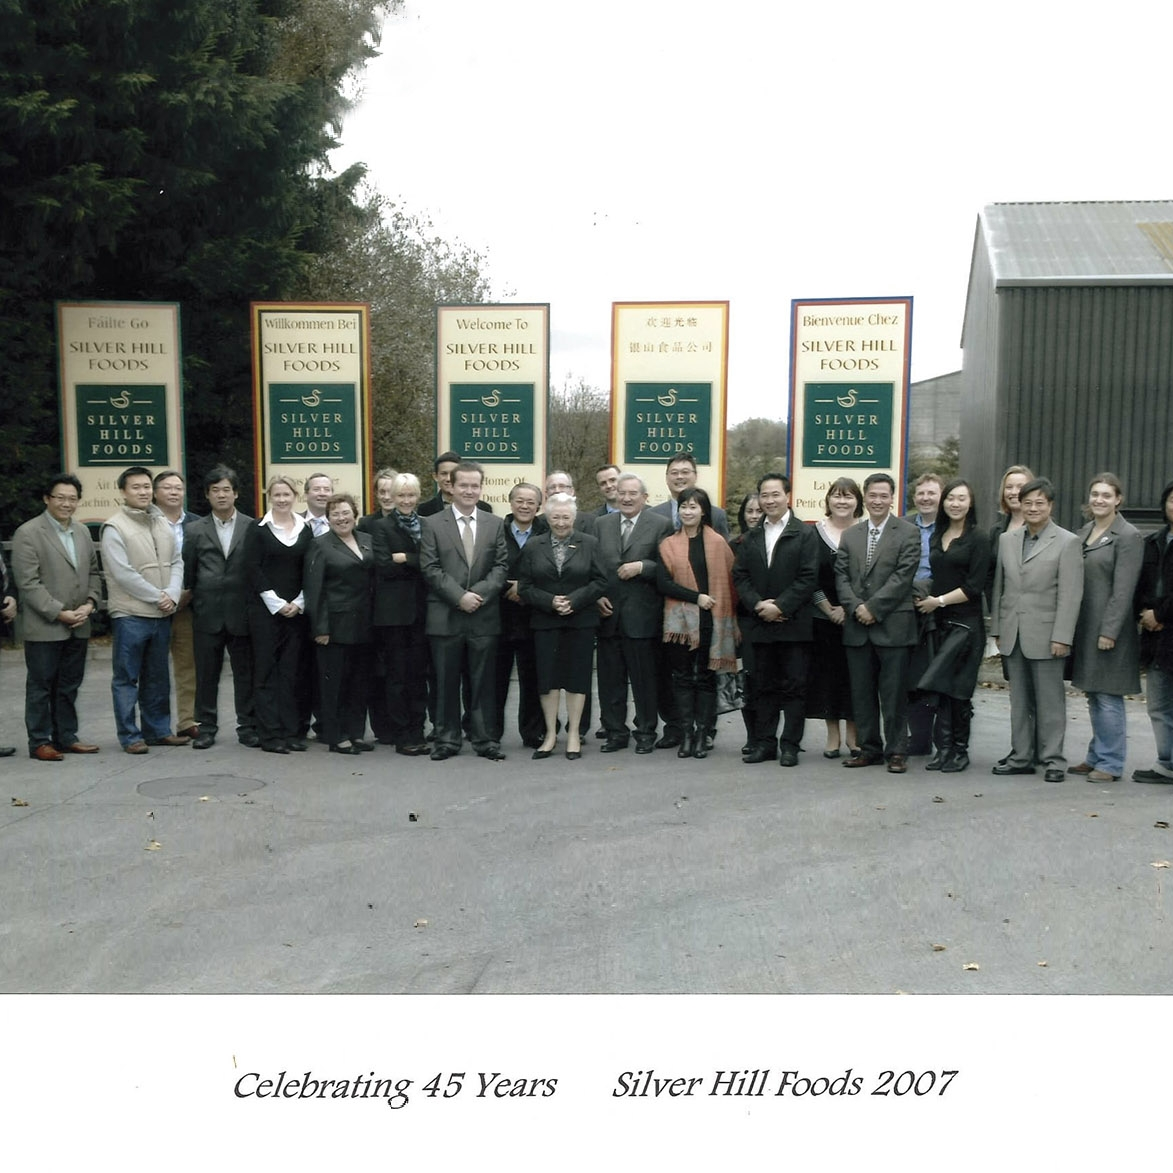 45 Years - 2007We celebrate 45 years in business with our ever expanding customer base from all around the world.